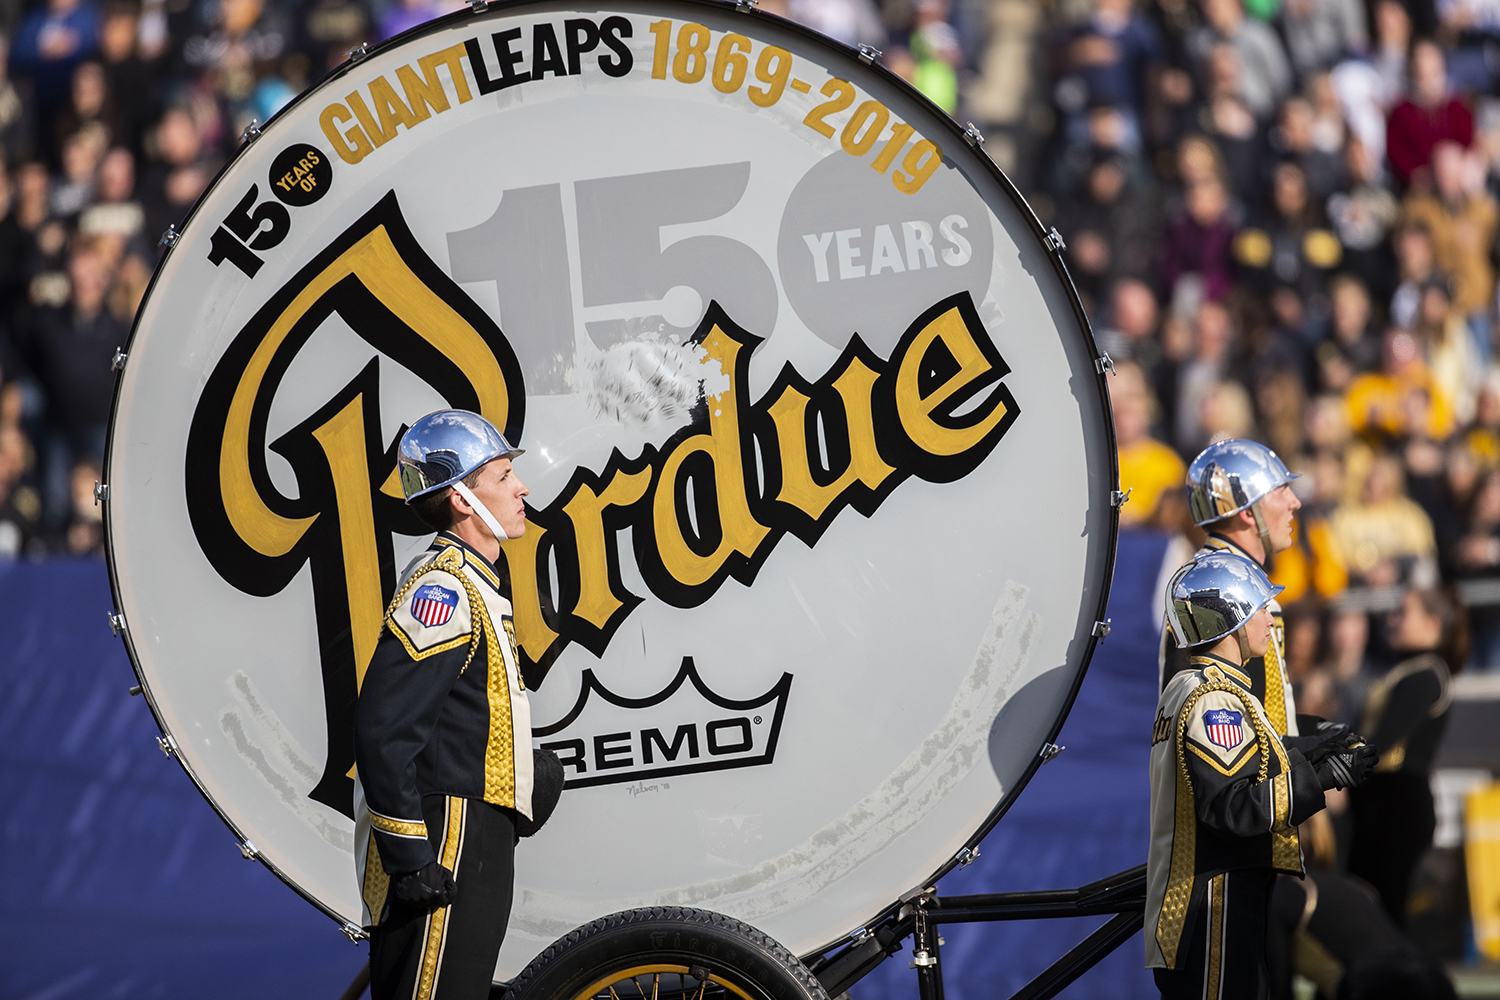 A+Purdue+All-American+Marching+Band+member+stands+with+their+oversized+bass+drum+during+the+Iowa%2FPurdue+game+at+Ross-Ade+Stadium+in+West+Lafayette%2C+Ind.+The+Boilermakers+defeated+the+Hawkeyes%2C+38-36%2C+with+a+last+second+field+goal.+